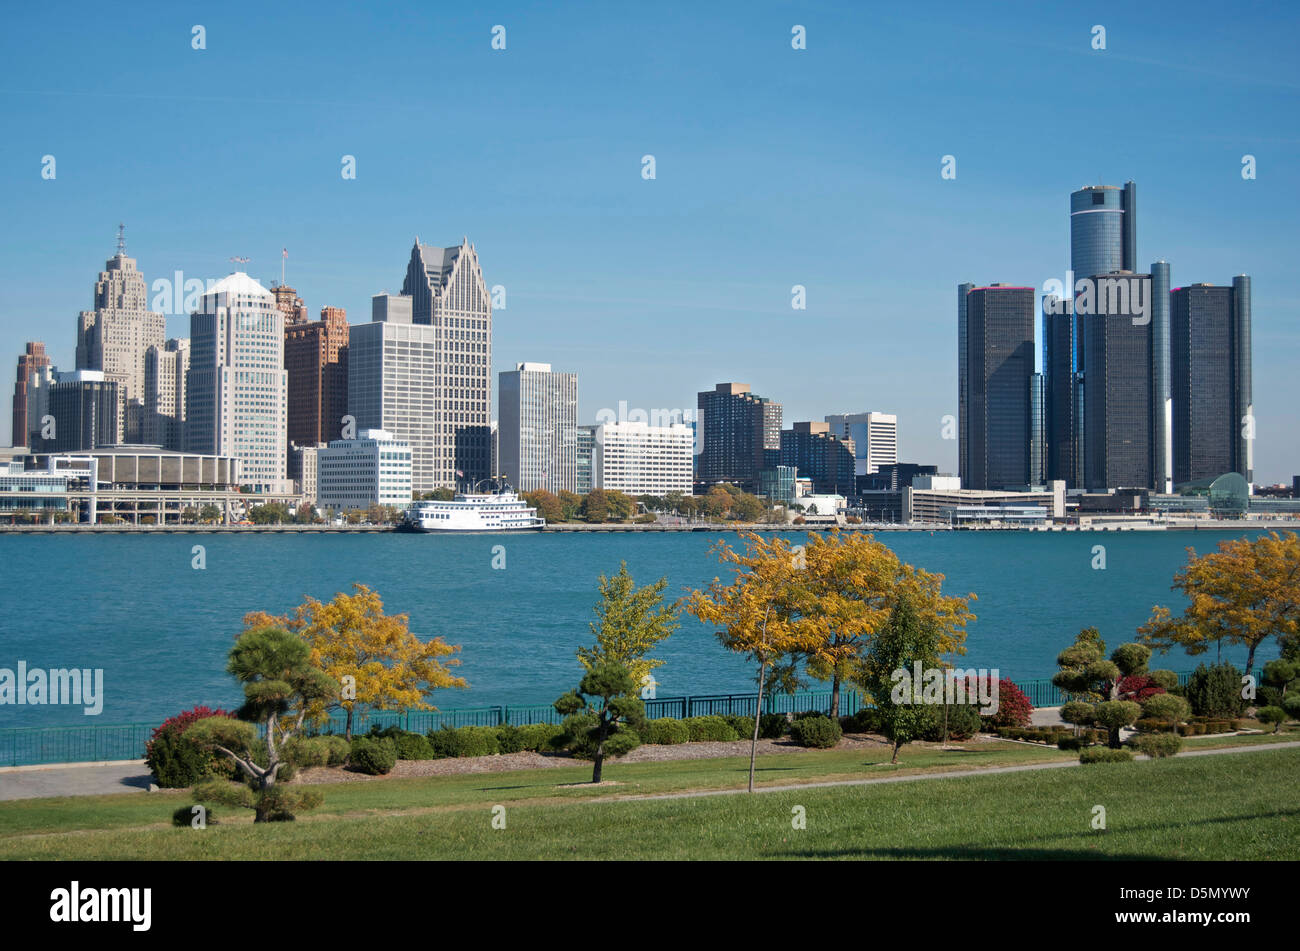 Panoramic shot of Detroit's skyline taken from Ontario,Canada and across the Detroit River in Fall of 2012. - Stock Image